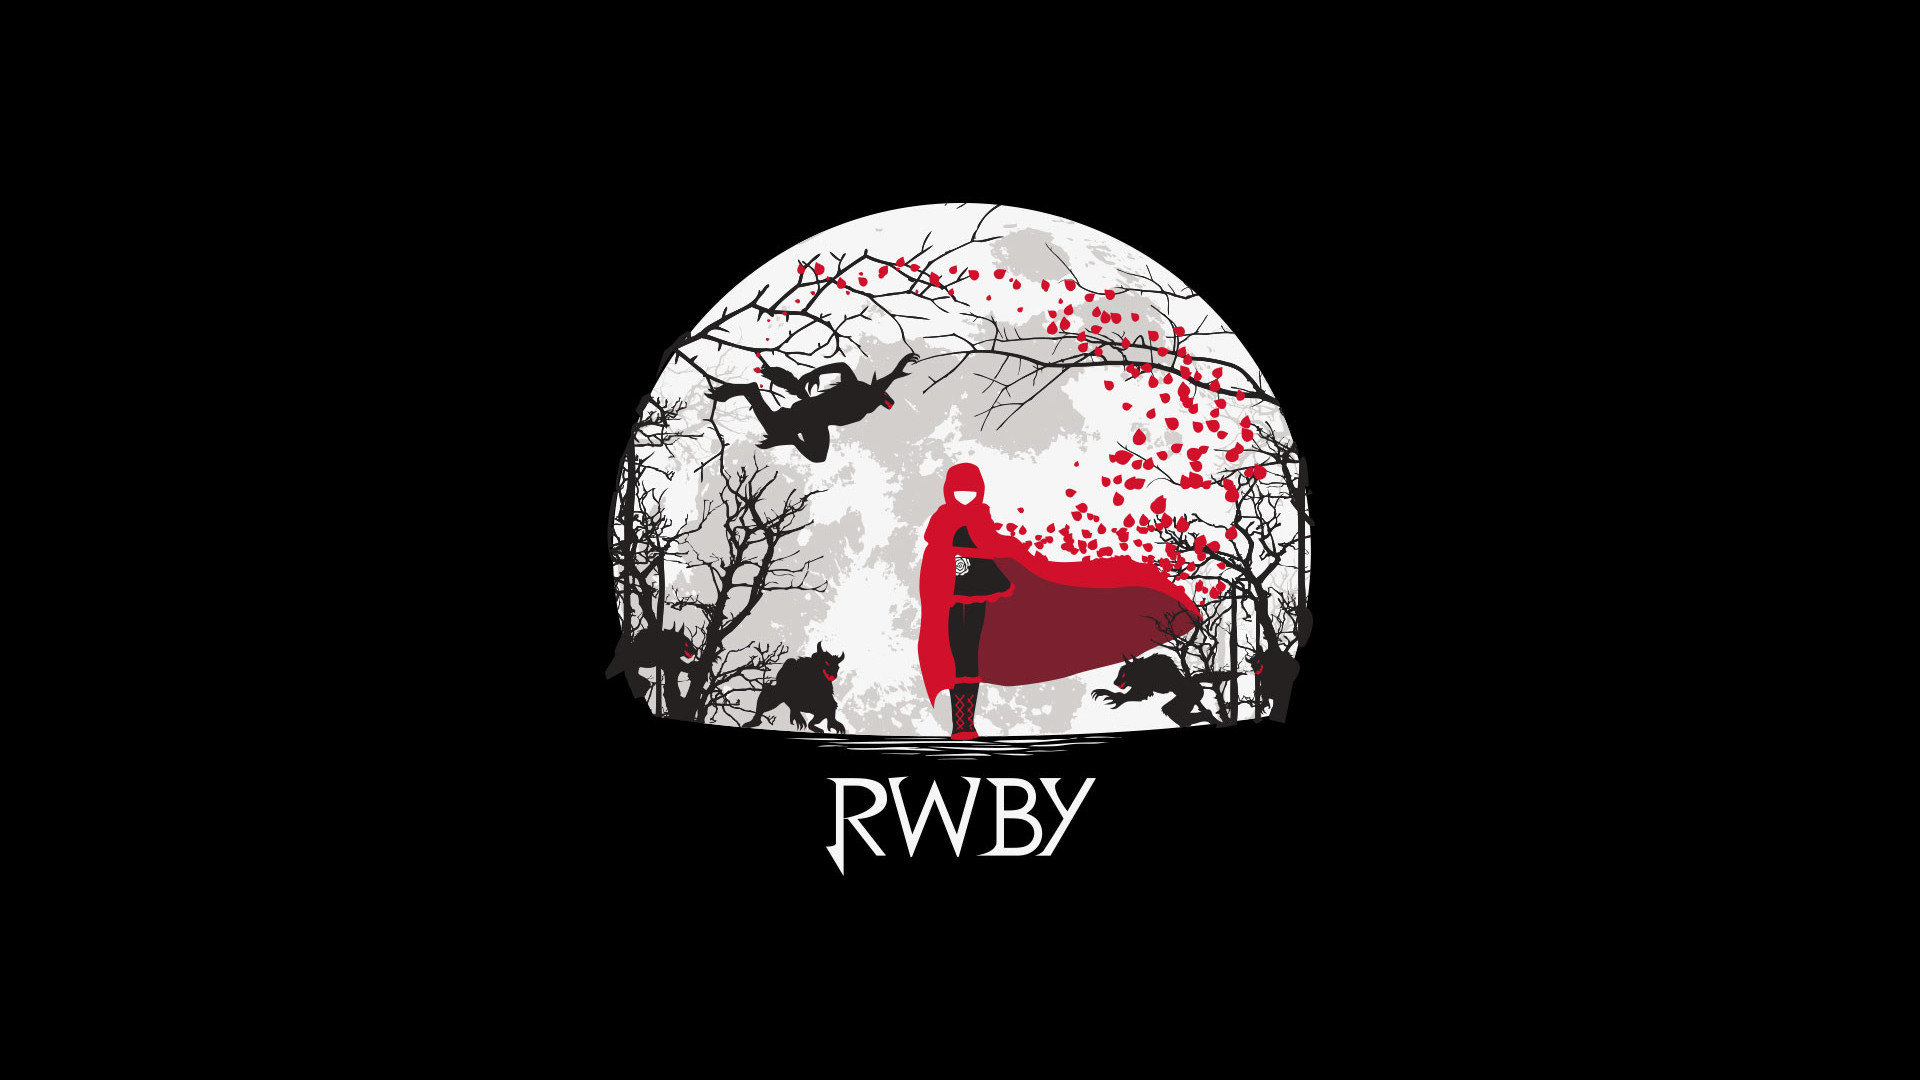 RWBY wallpapers HD for desktop backgrounds